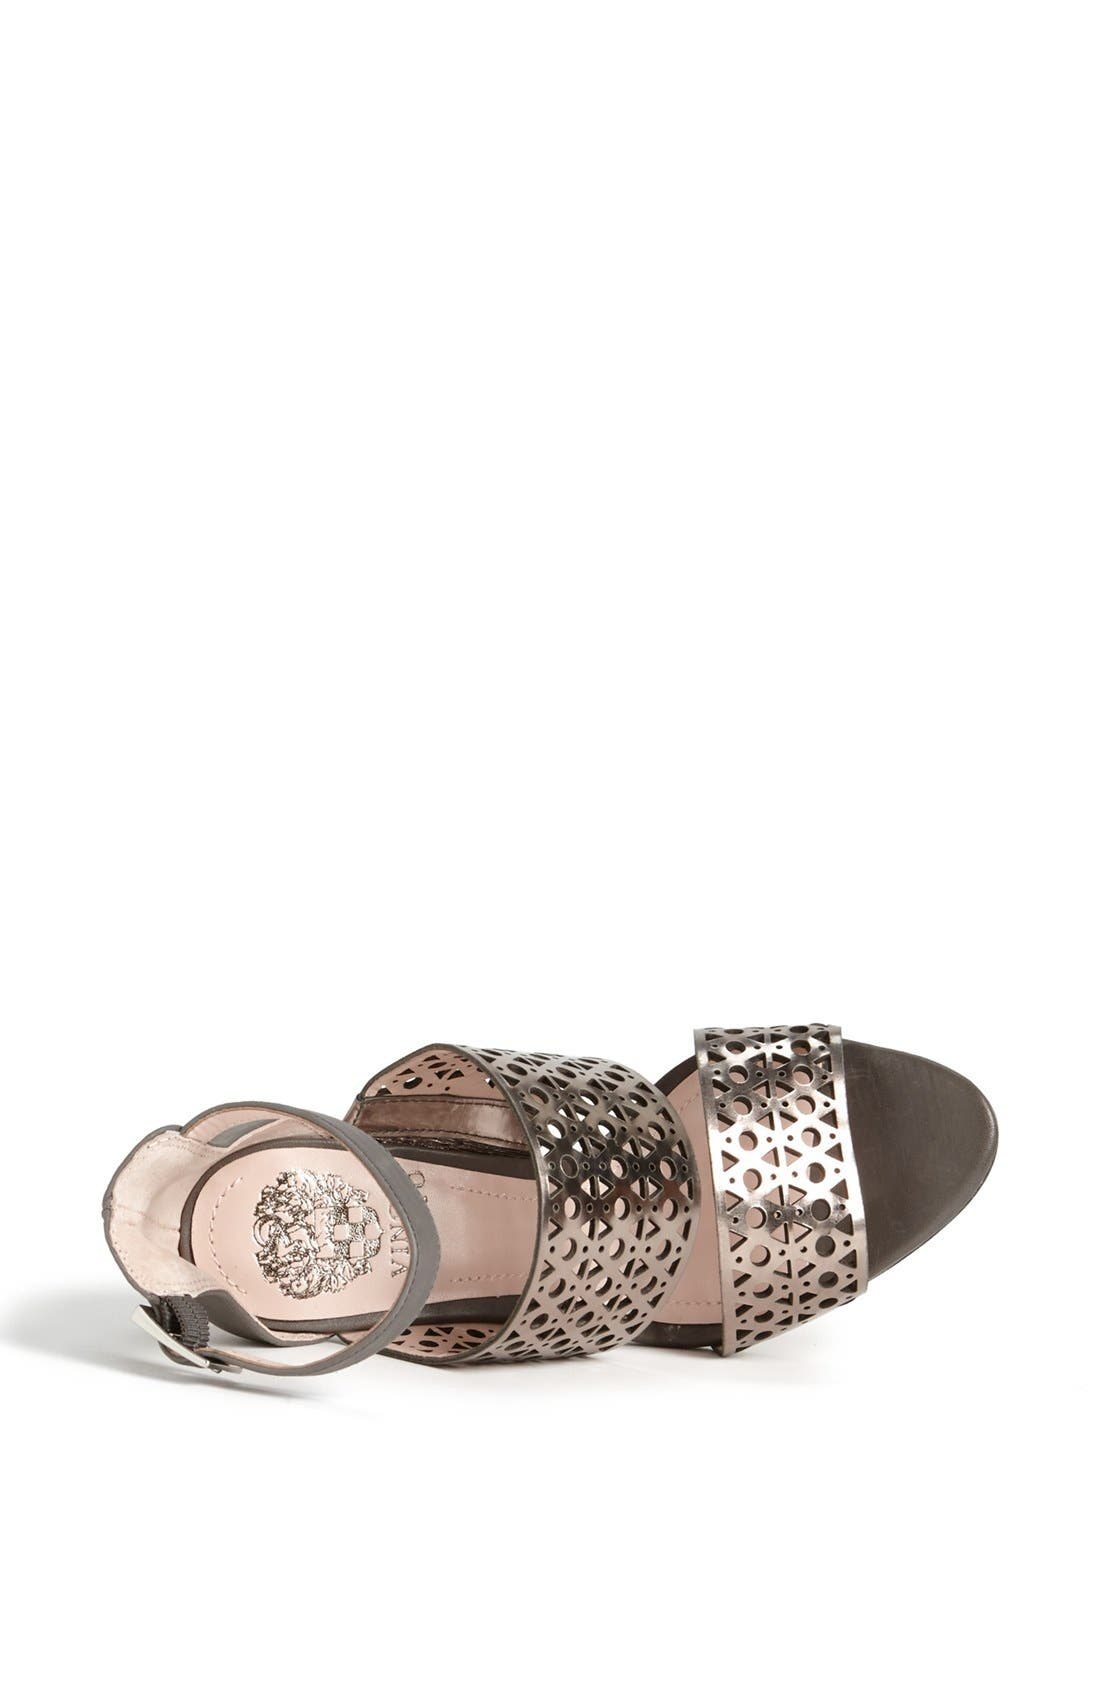 Alternate Image 3  - Vince Camuto 'Okeli' Perforated Ankle Strap Sandal